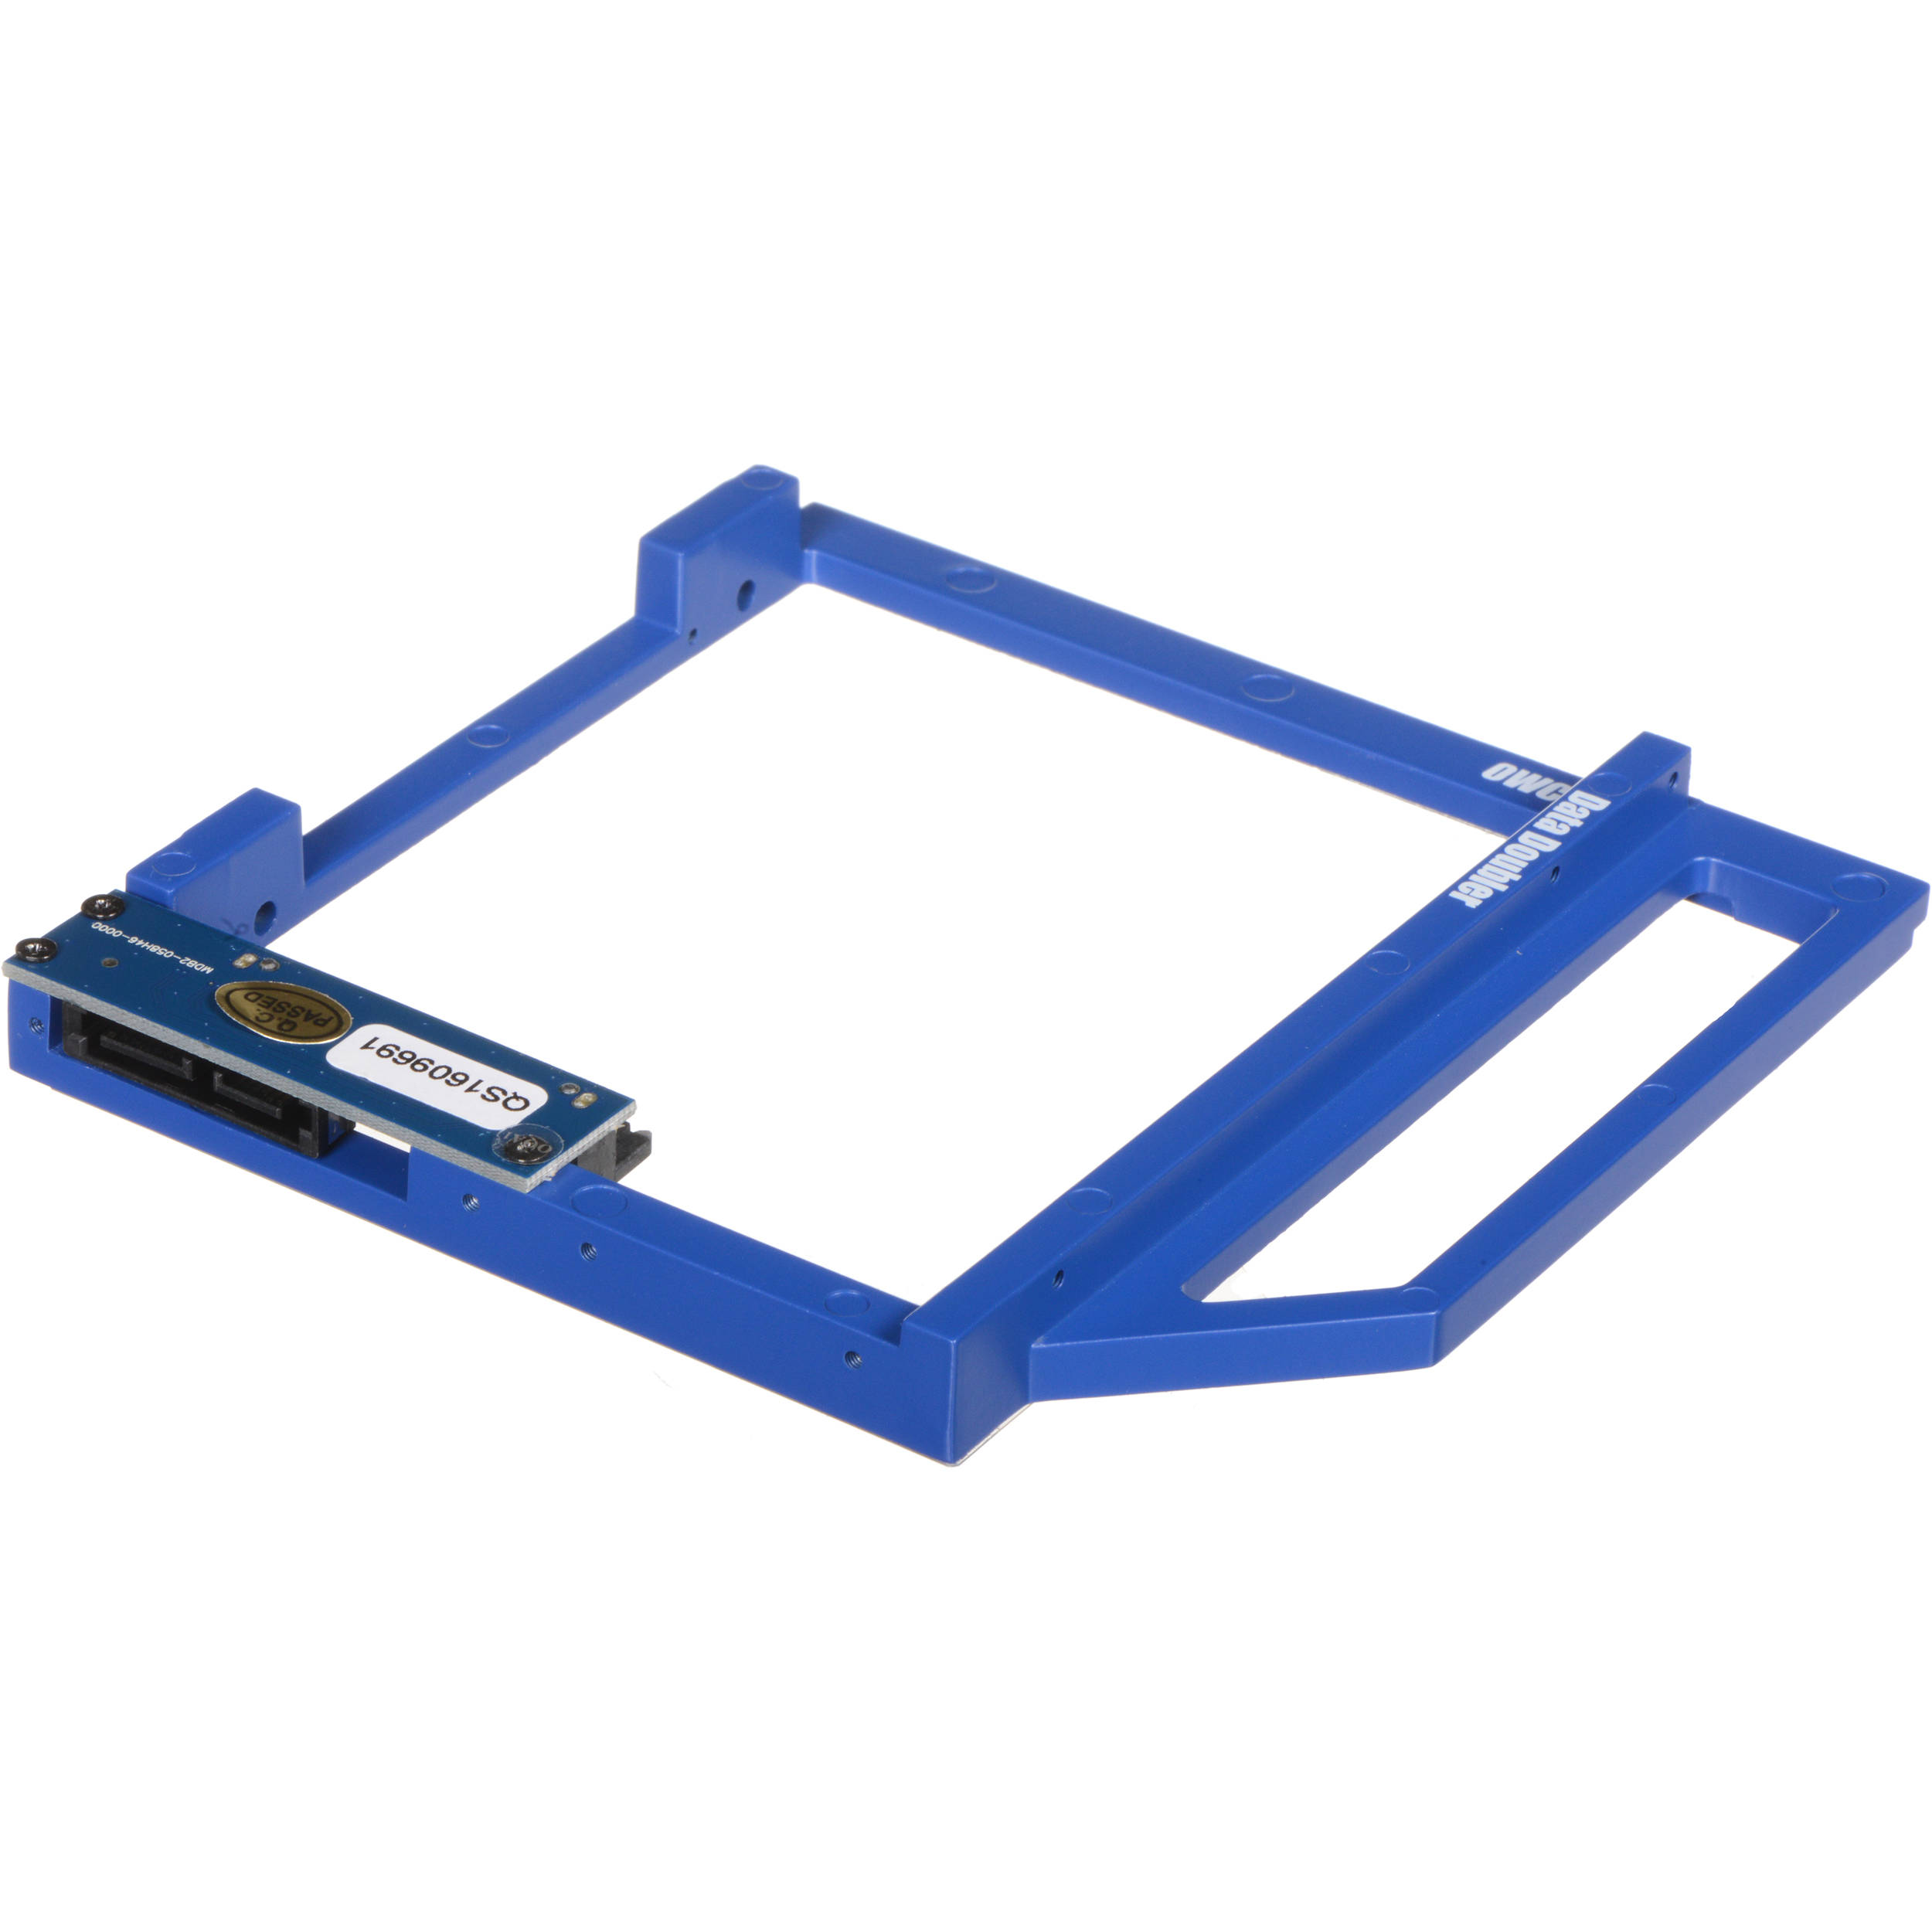 OWC / Other World Computing Data Doubler Optical Bay Hard Drive/SSD  Mounting Solution for iMac 2009-2011 (Upgrade Tools Not Included)